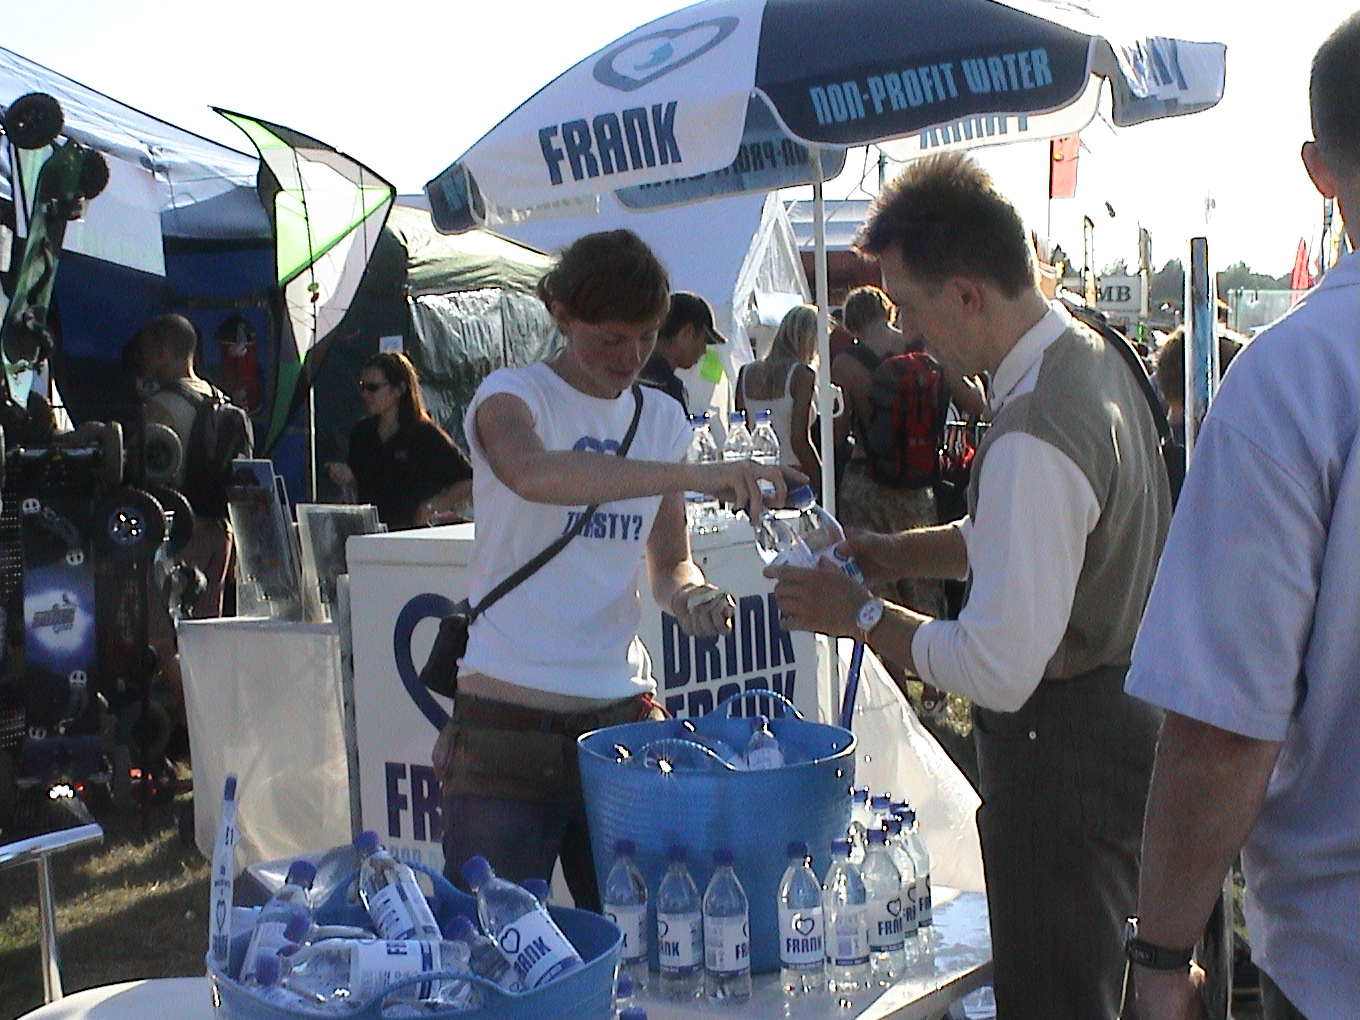 Selling water in Bristol